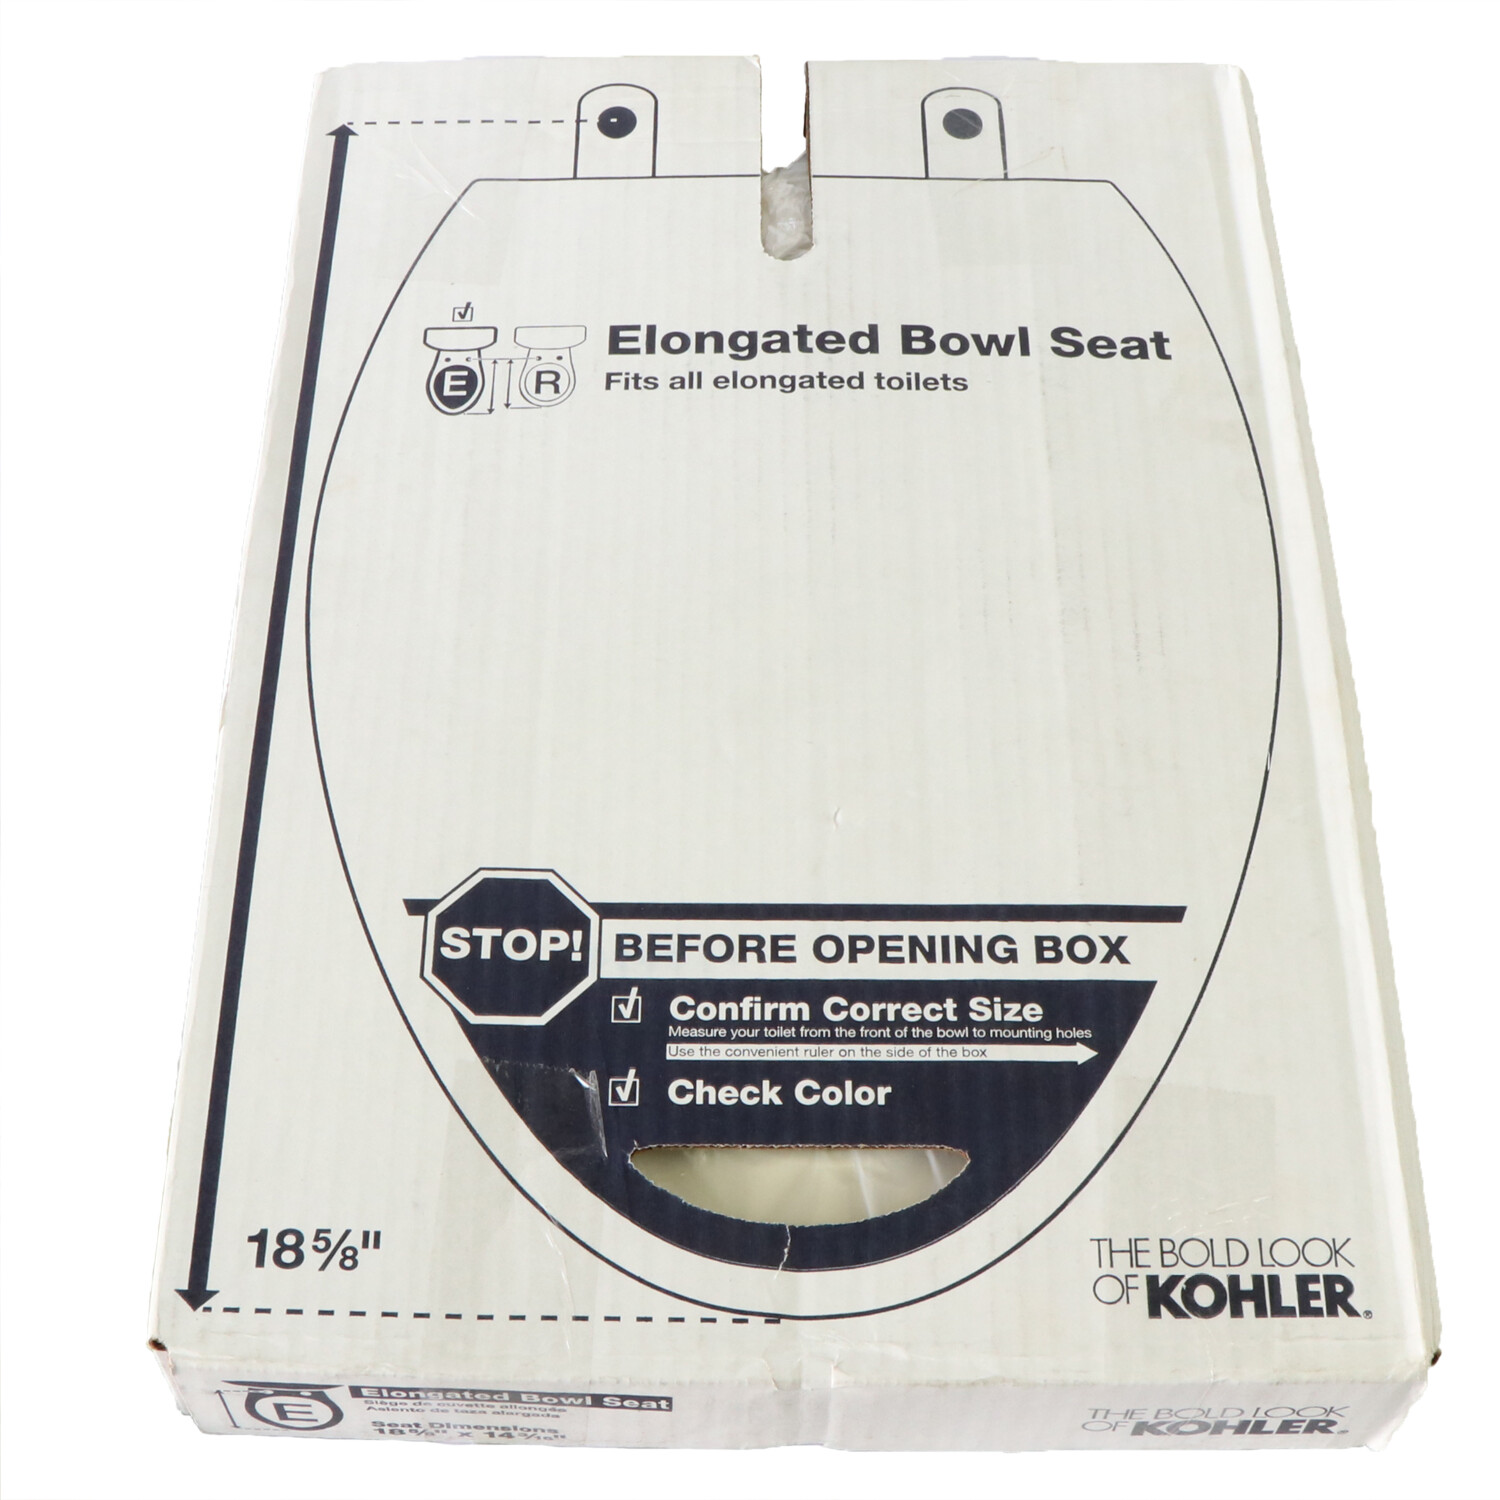 Kohler Elongated Toilet Seat K-4734-47